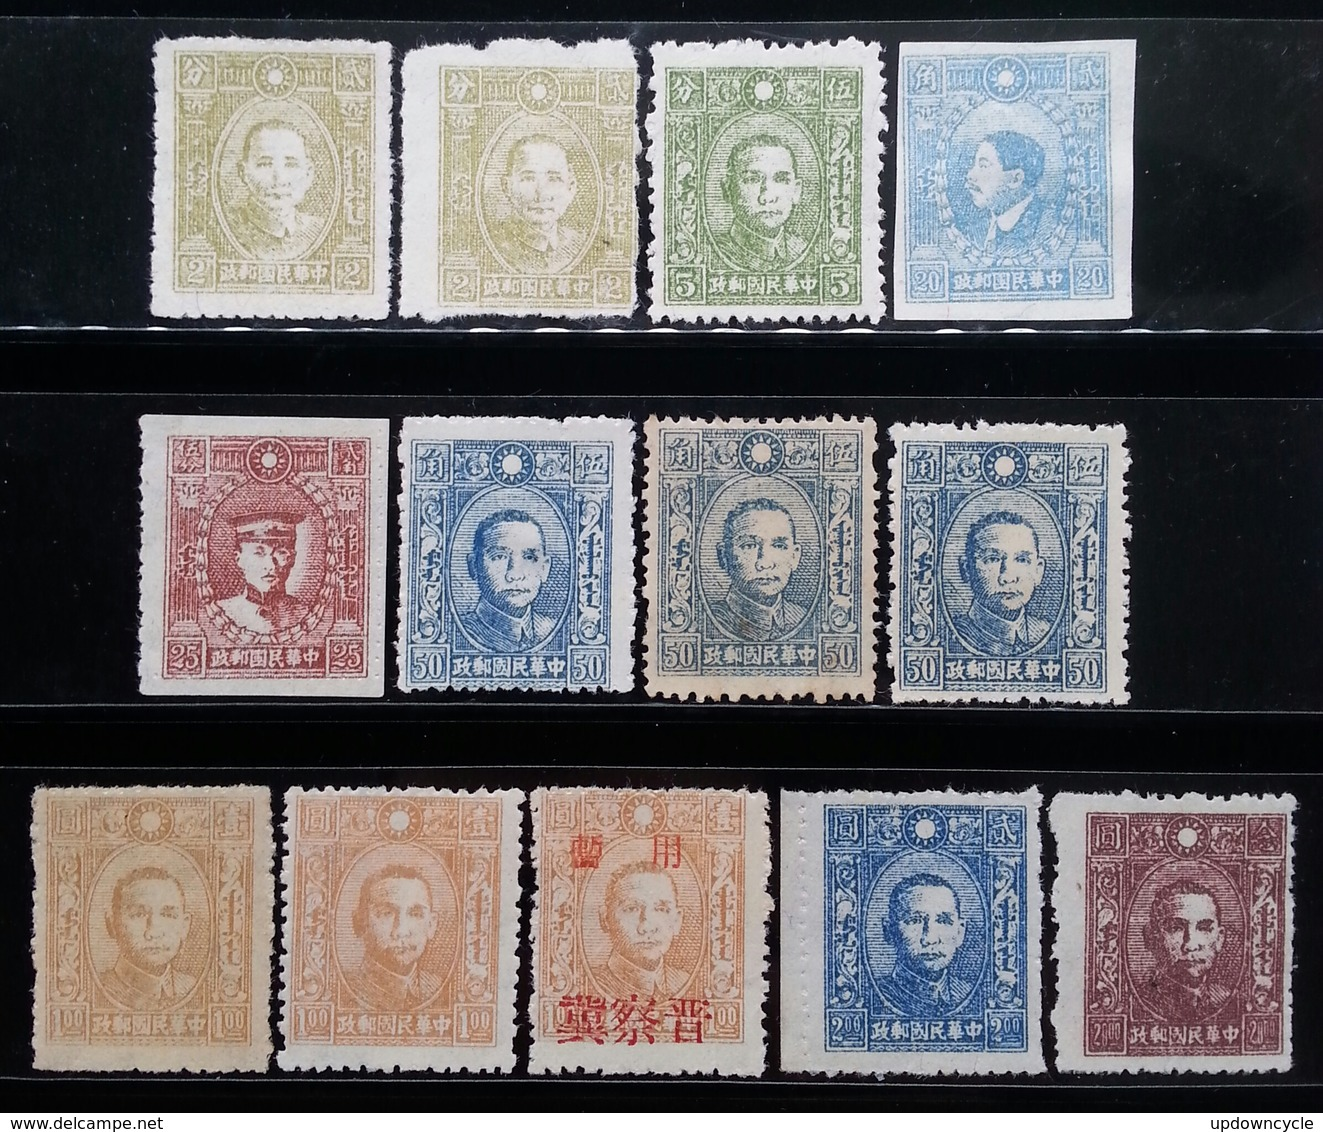 China 1945 Mengkiang Unissued Stamps 2c-$20 Mint With Gum Mixed Conditions - 1941-45 Chine Du Nord